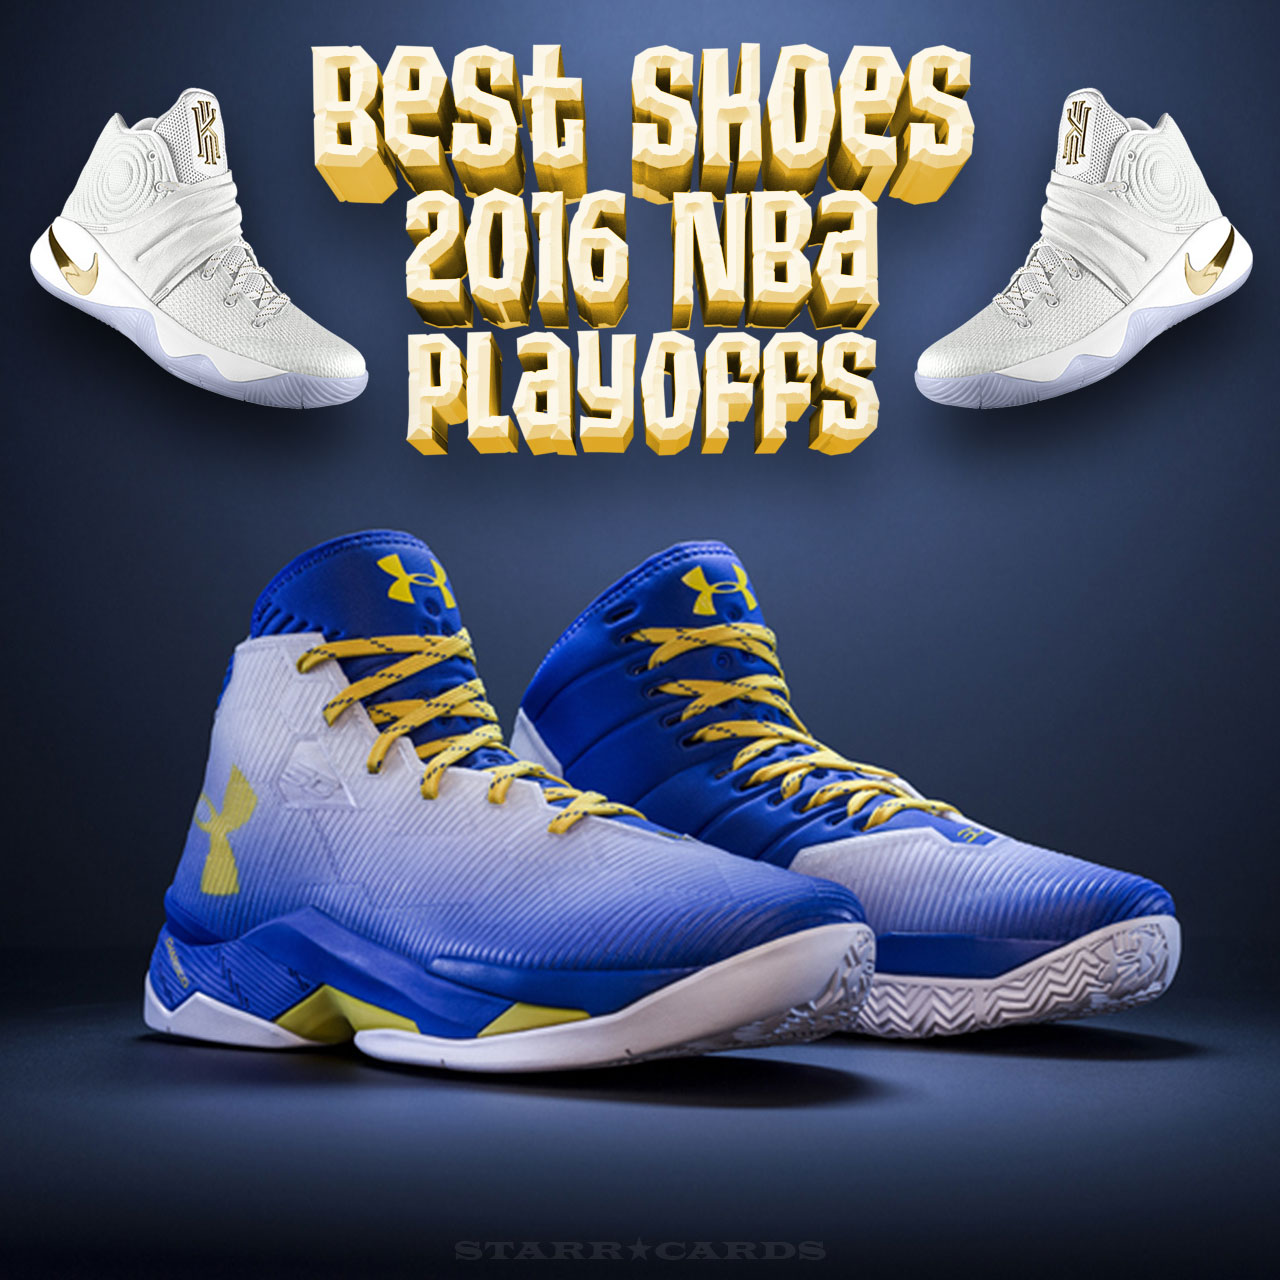 9297874f07 Steph Curry and Kyrie Irving shoes make Best Shoes 2018 NBA Playoffs list